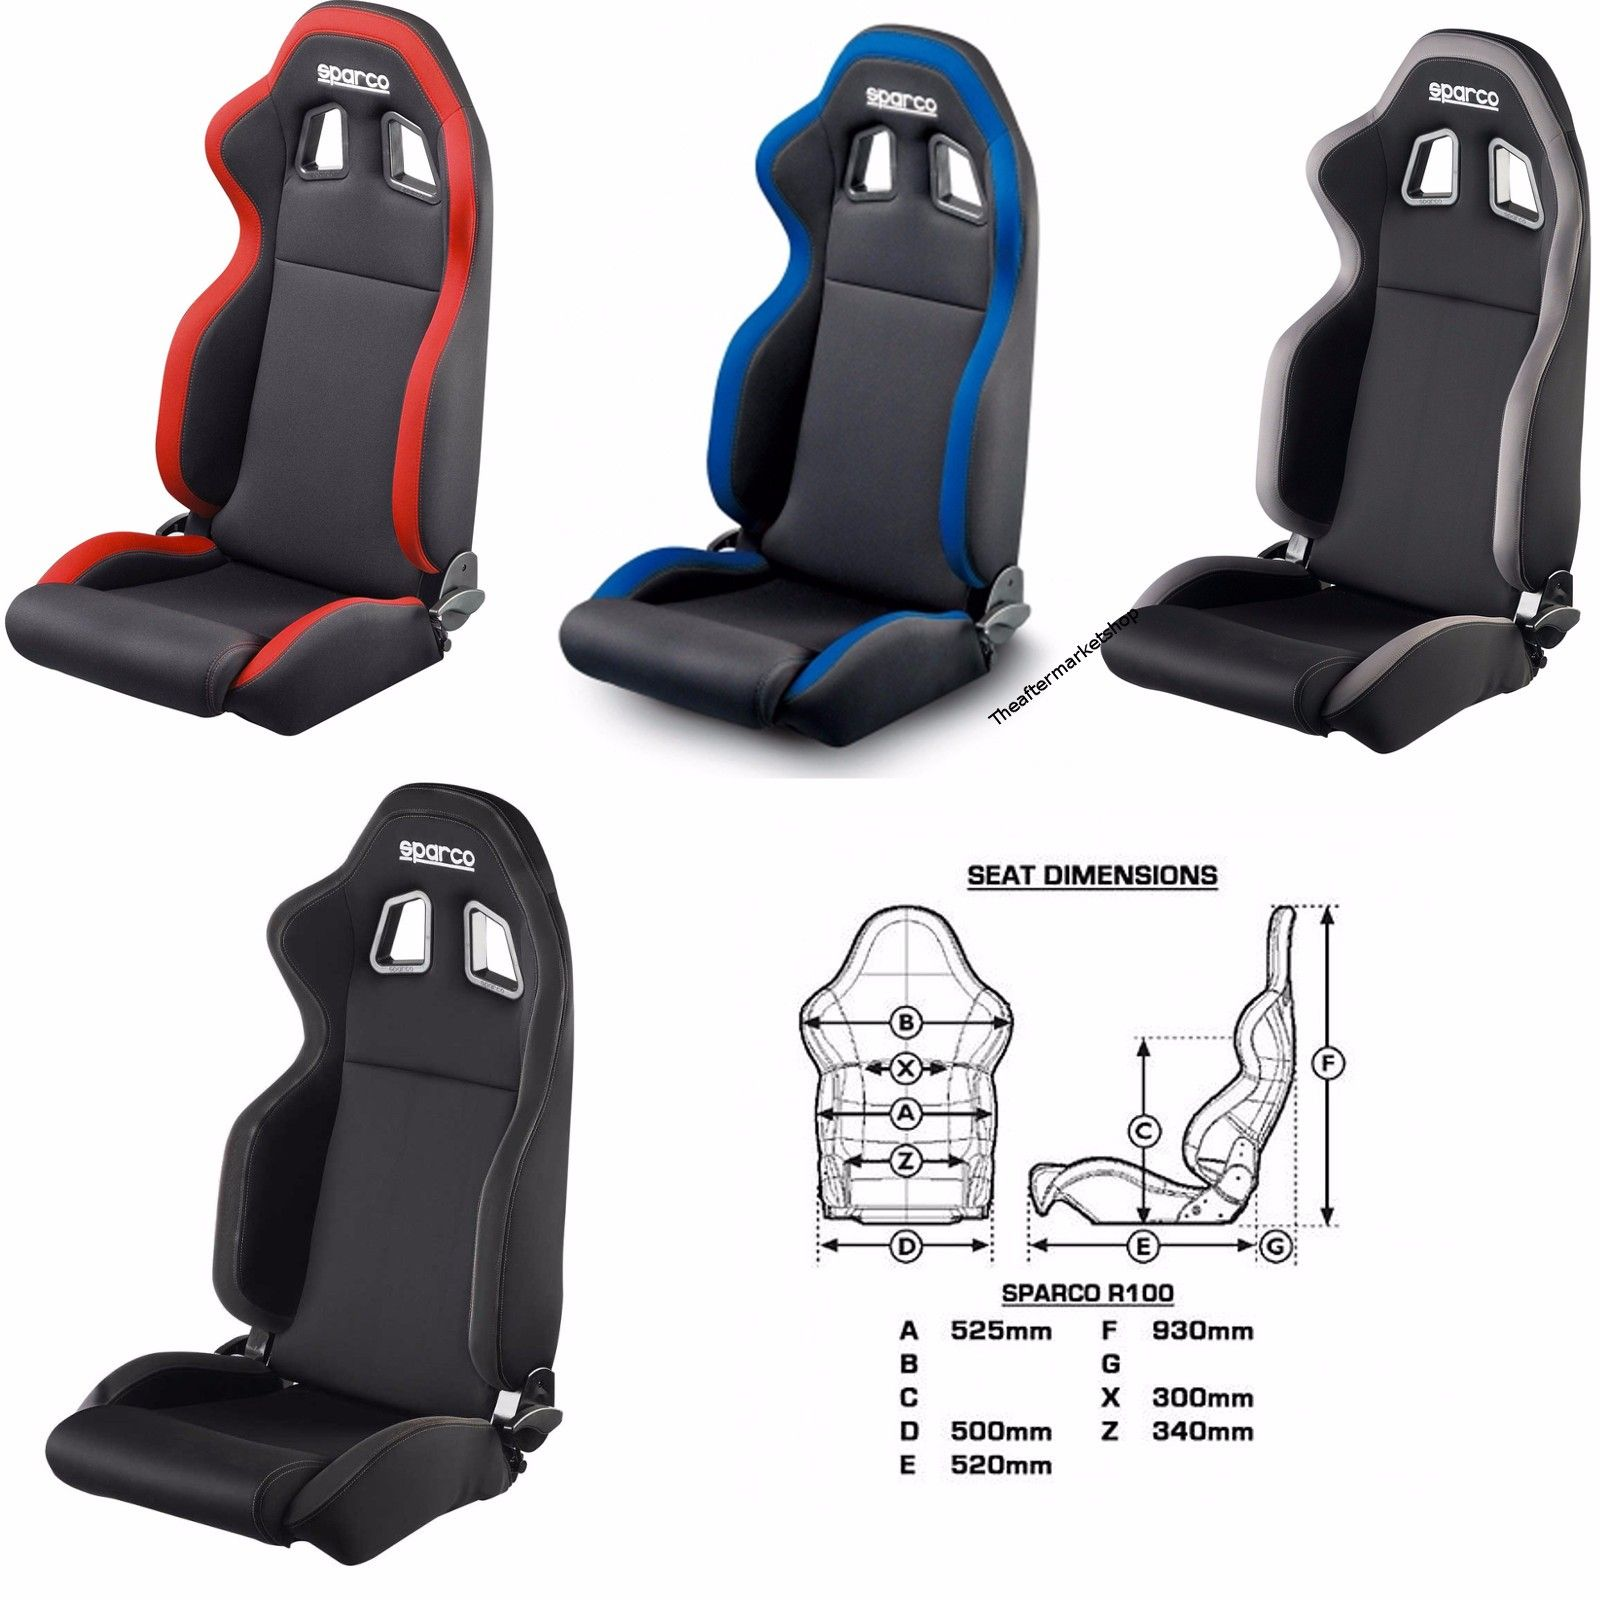 Image result for sparco r100 seat dimensions | Cars | Racing